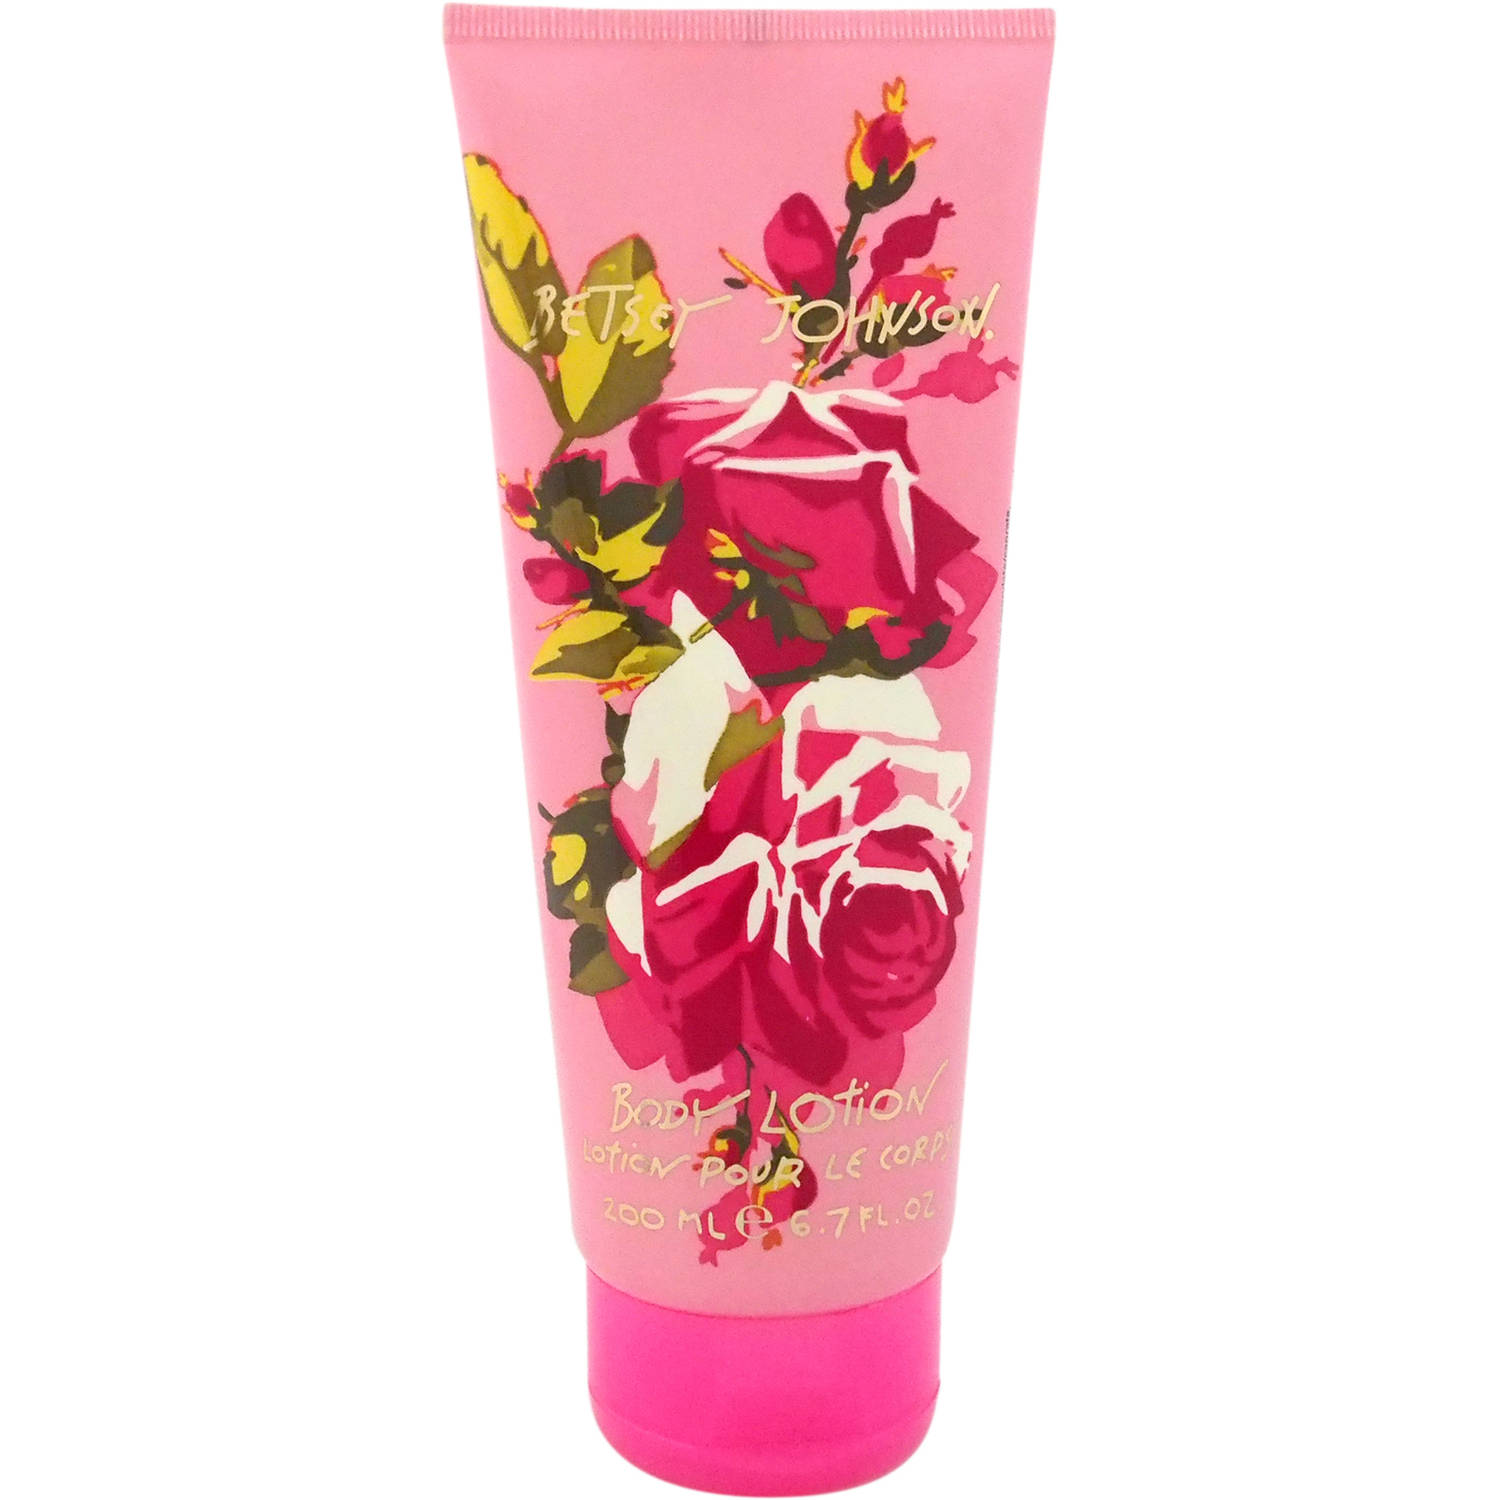 Betsey Johnson for Women Body Lotion, 6.7 oz